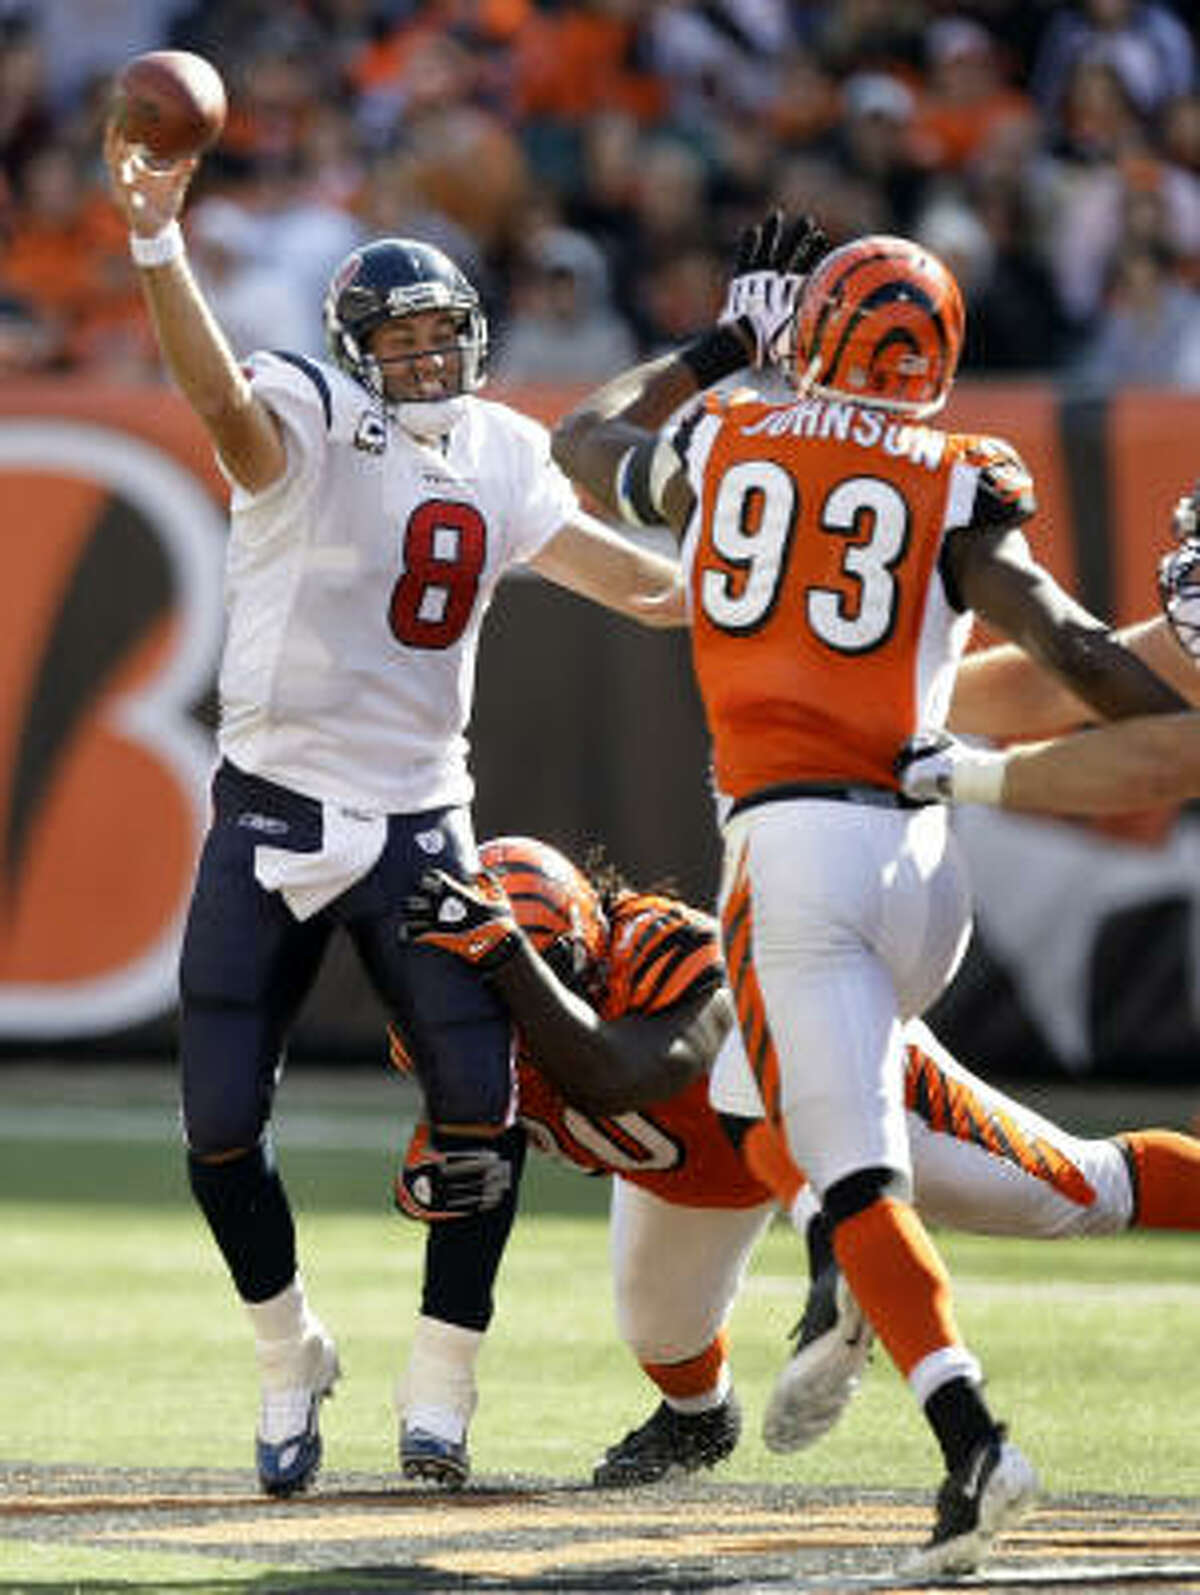 Texans quarterback Matt Schaub picked apart the Bengals defense, going 28 of 40 for 392 yards and four touchdowns.